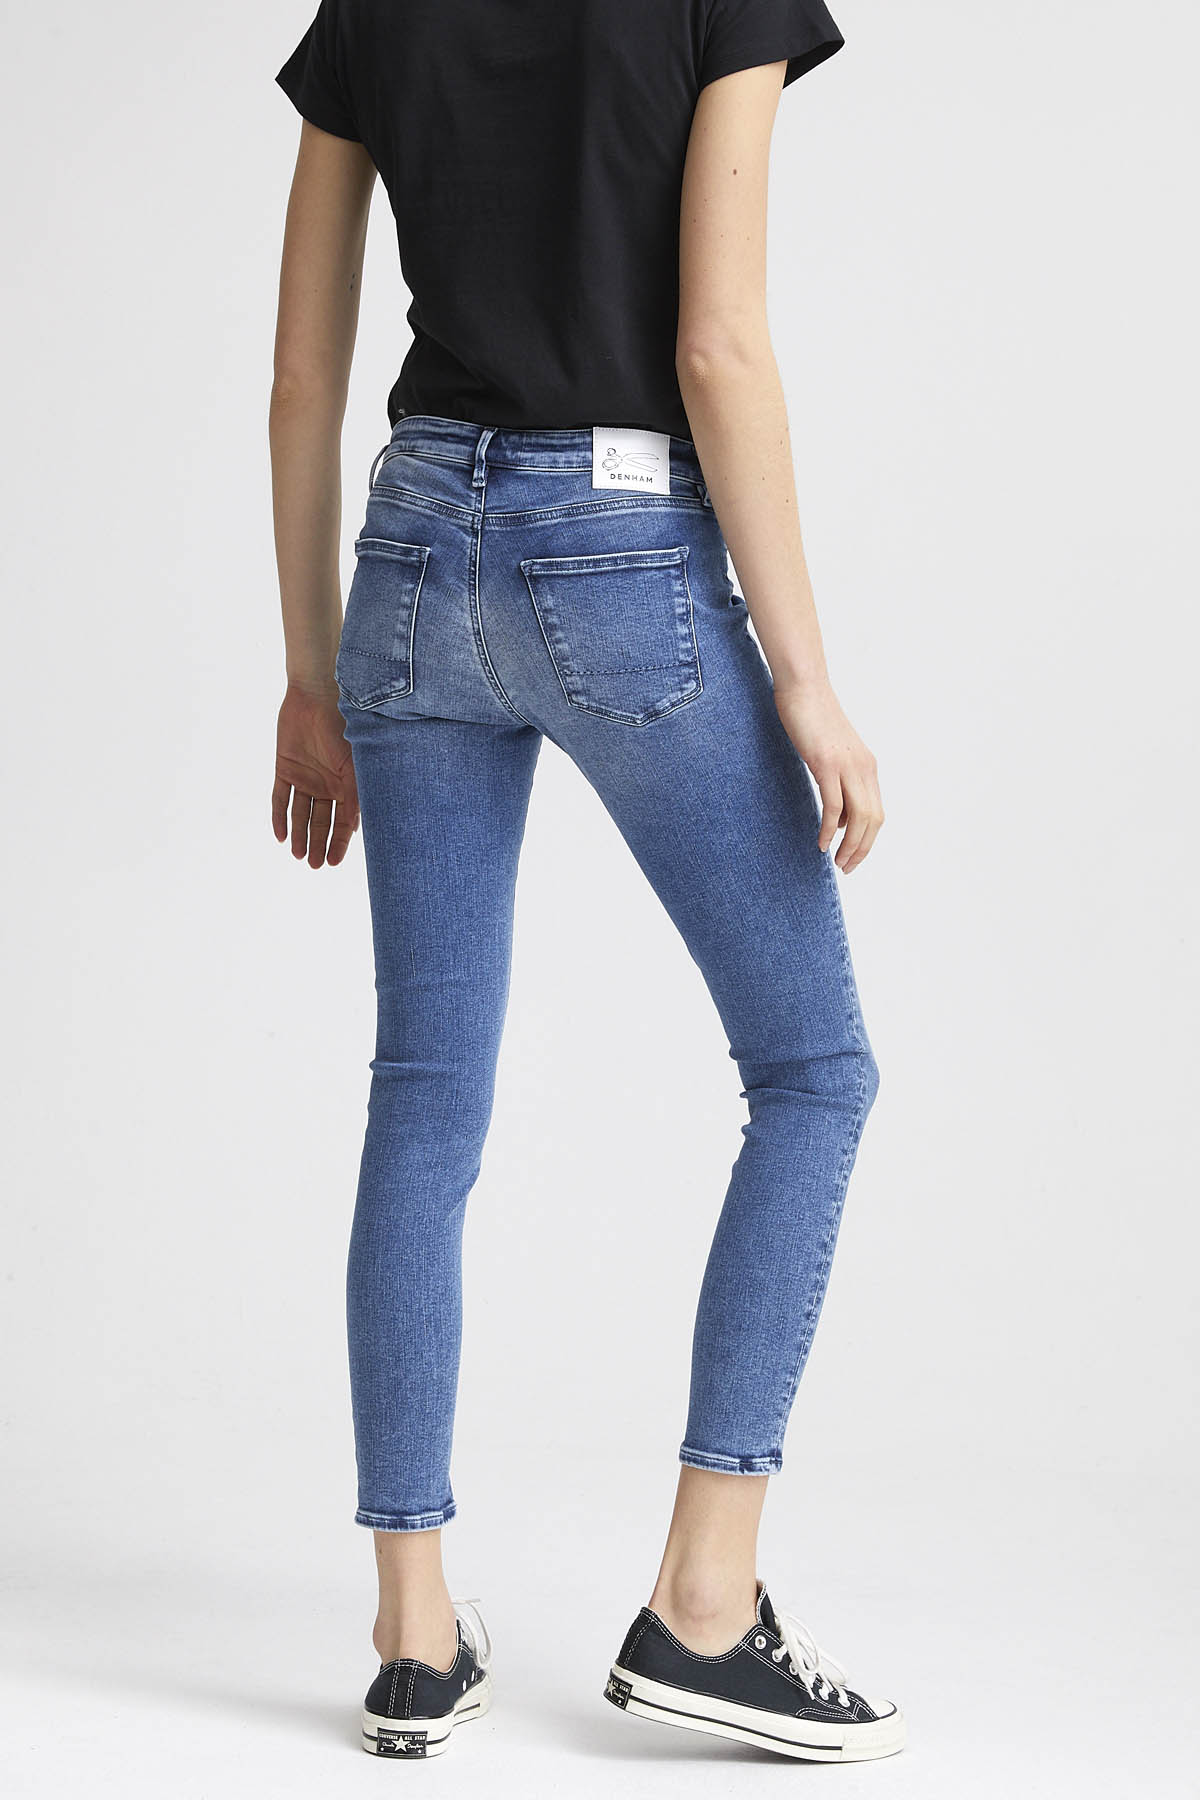 Spray - Super Tight Fit Jeans - Detail